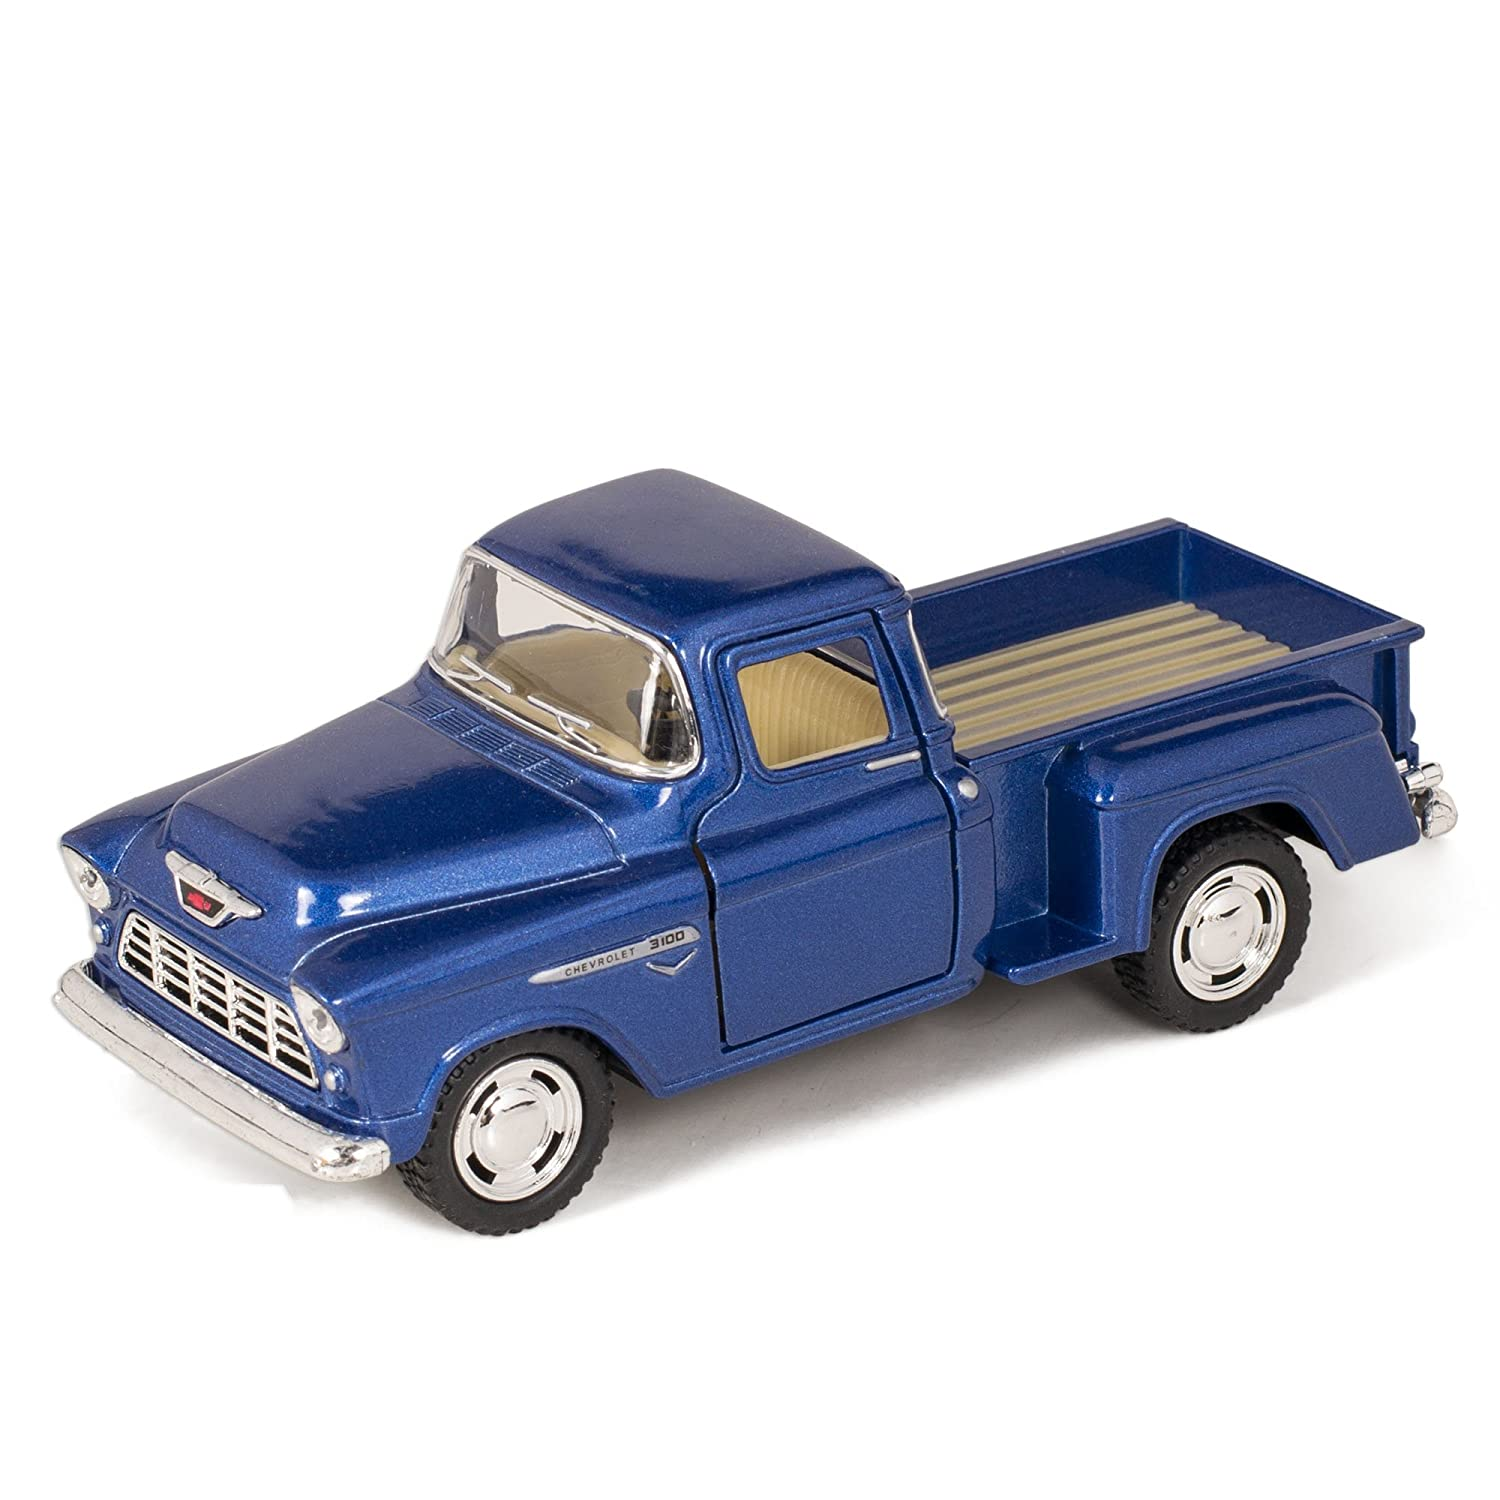 Kinsmart 1955 Chevy Step side Pick Up Die Cast Collectible Toy Truck Blue